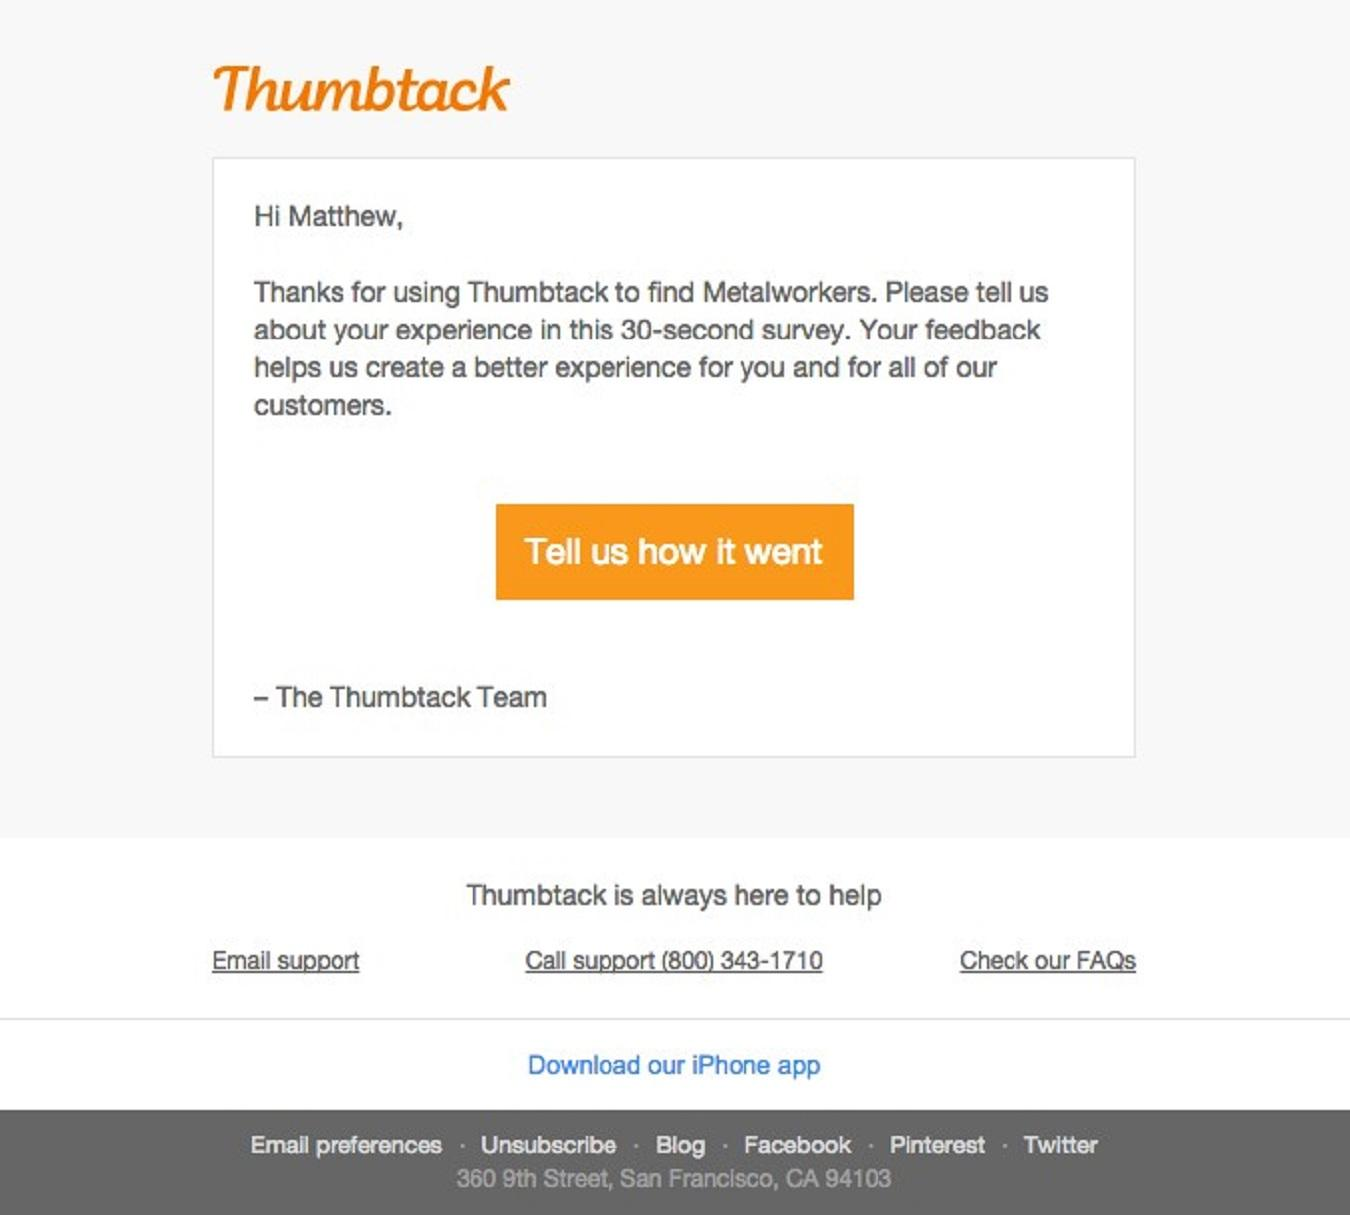 Thumbtack subject line example